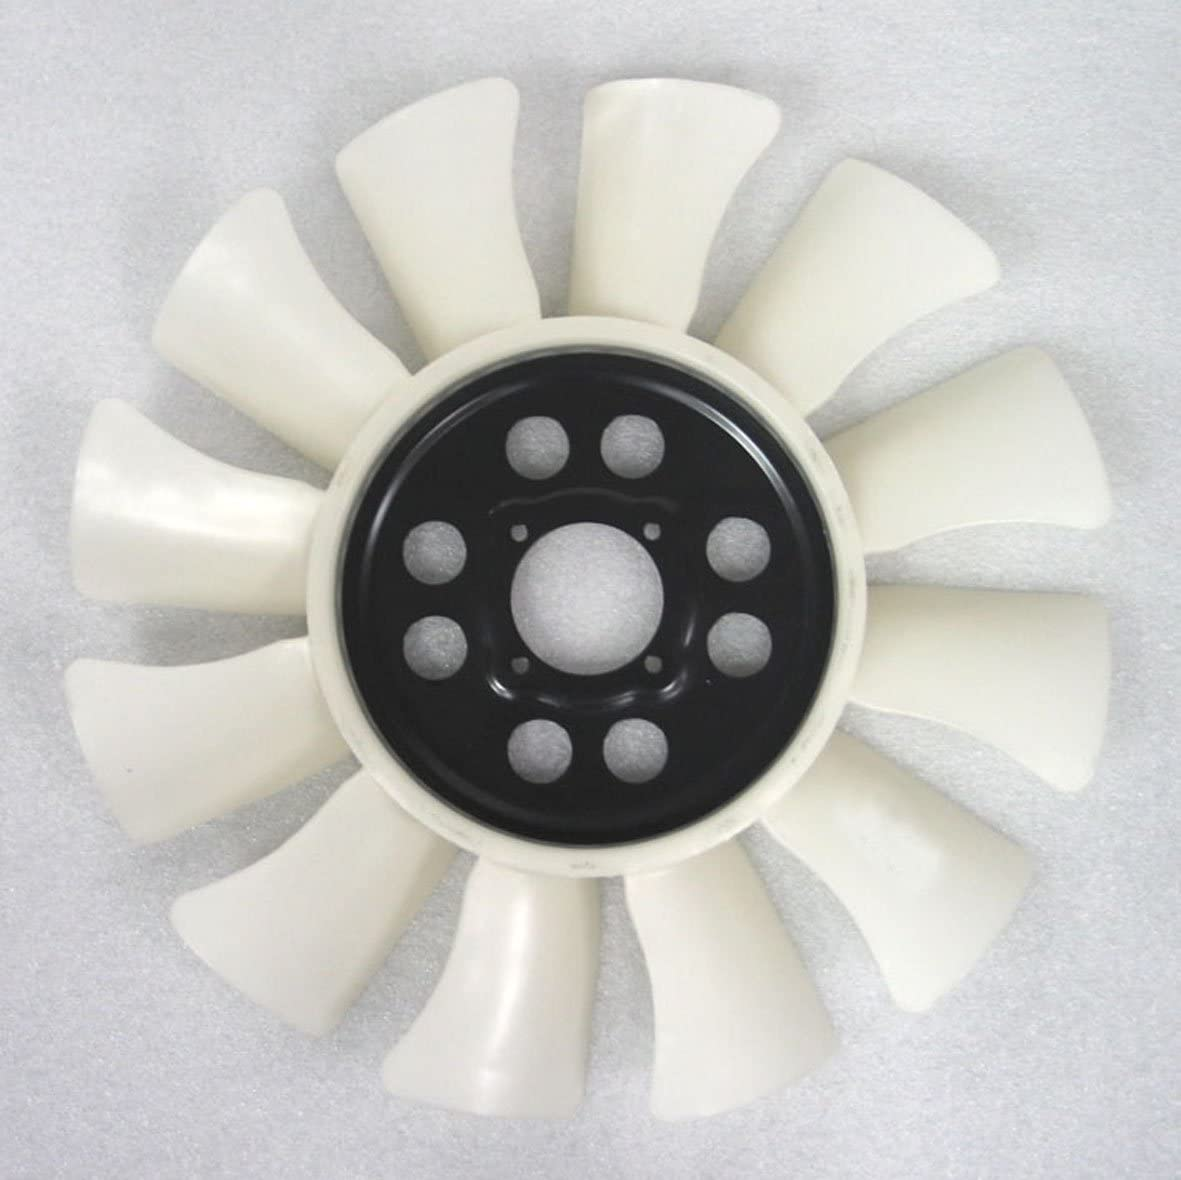 DEPO 330-55033-400 Replacement Engine Cooling Fan Blade (This product is an aftermarket product. It is not created or sold by the OE car company)